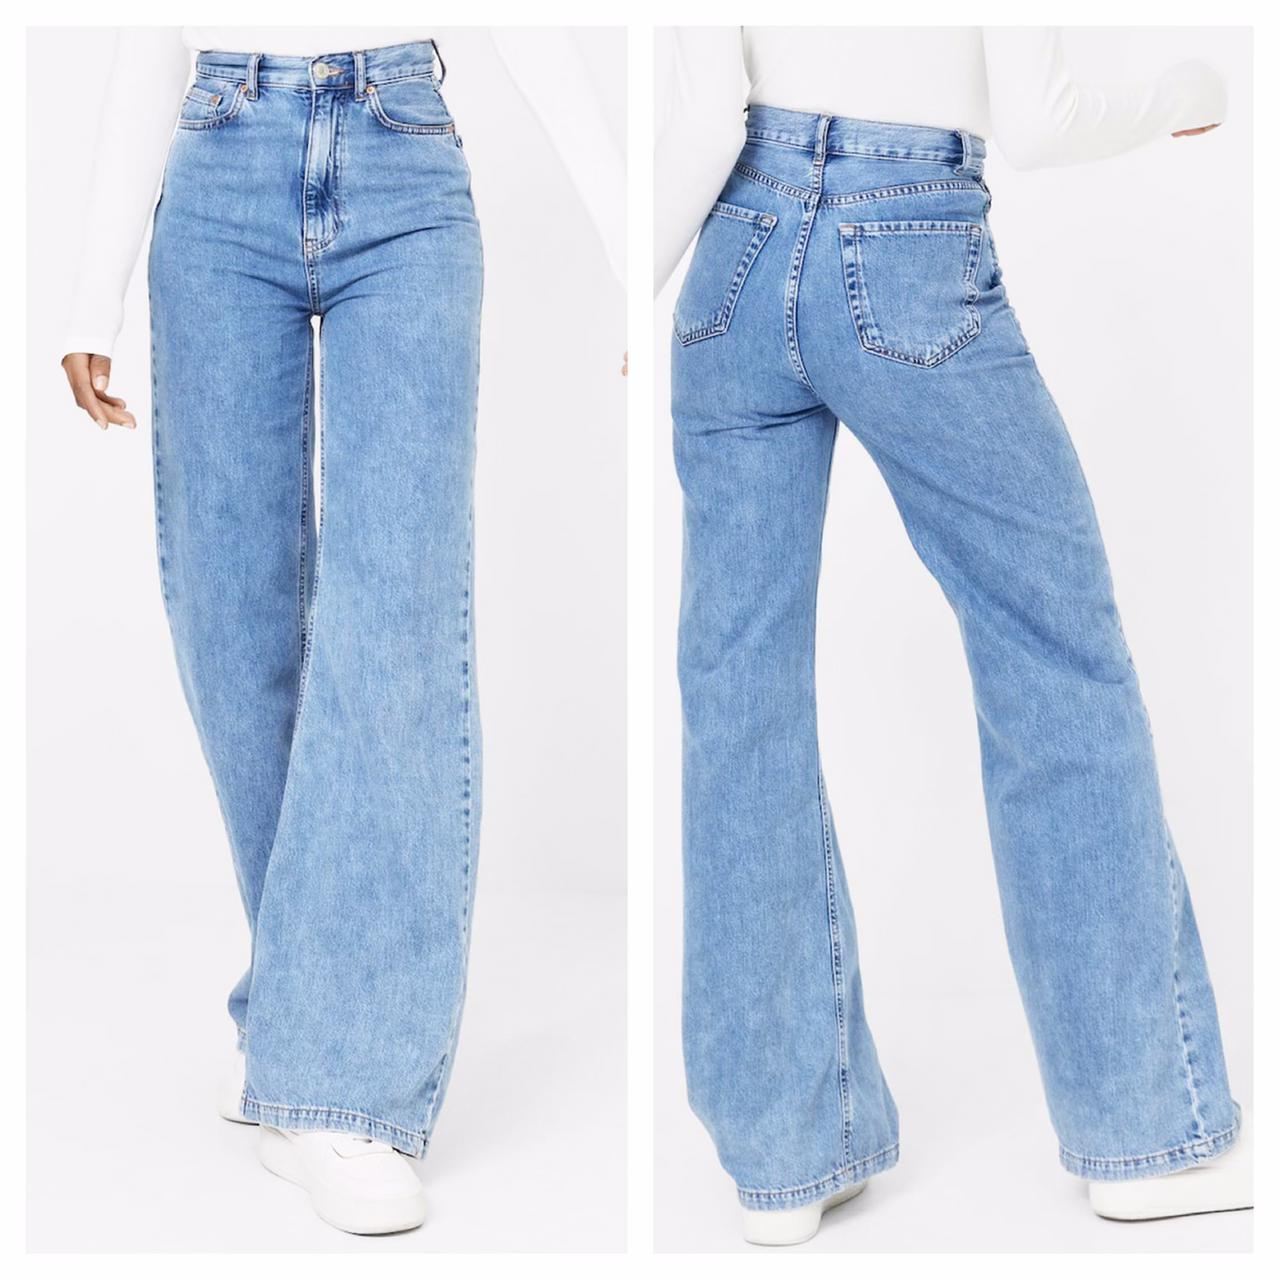 Jeans For Women Skinny High Waisted Stretch Pants Comfortable New Fashion